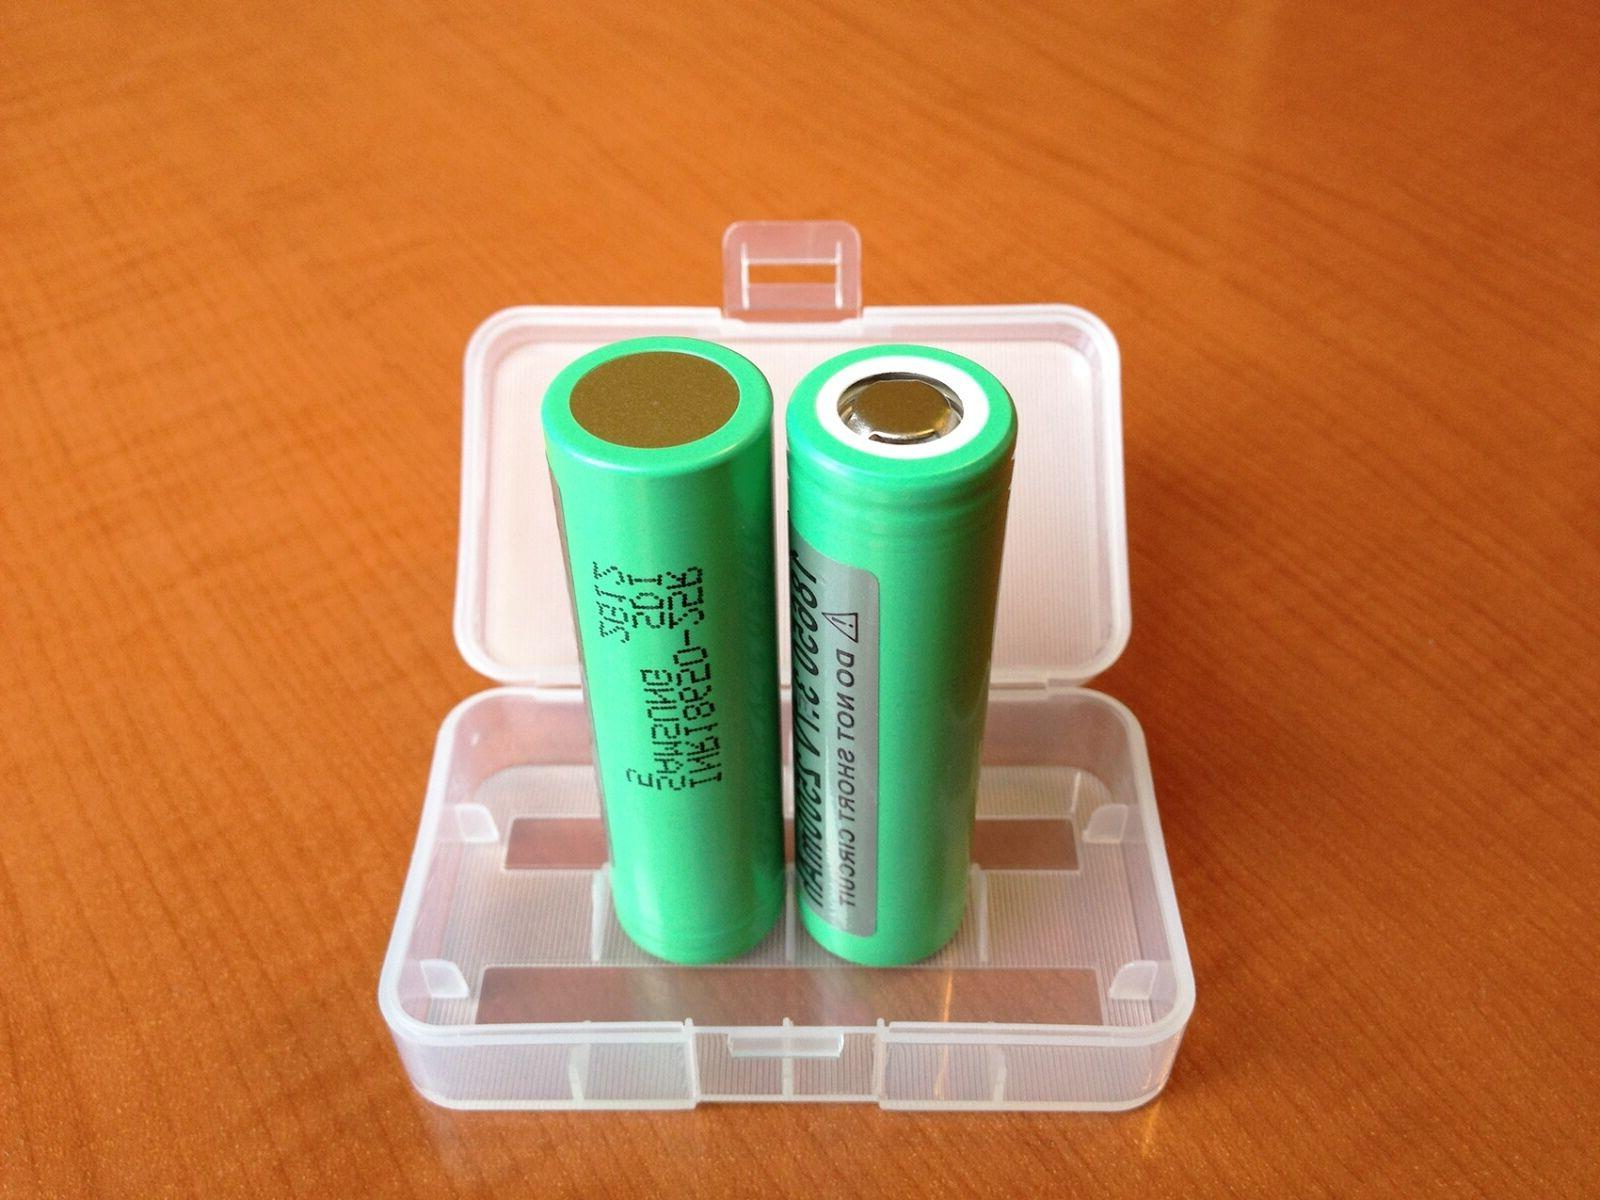 2x 2500mAh 20A IMR Rechargeable Battery